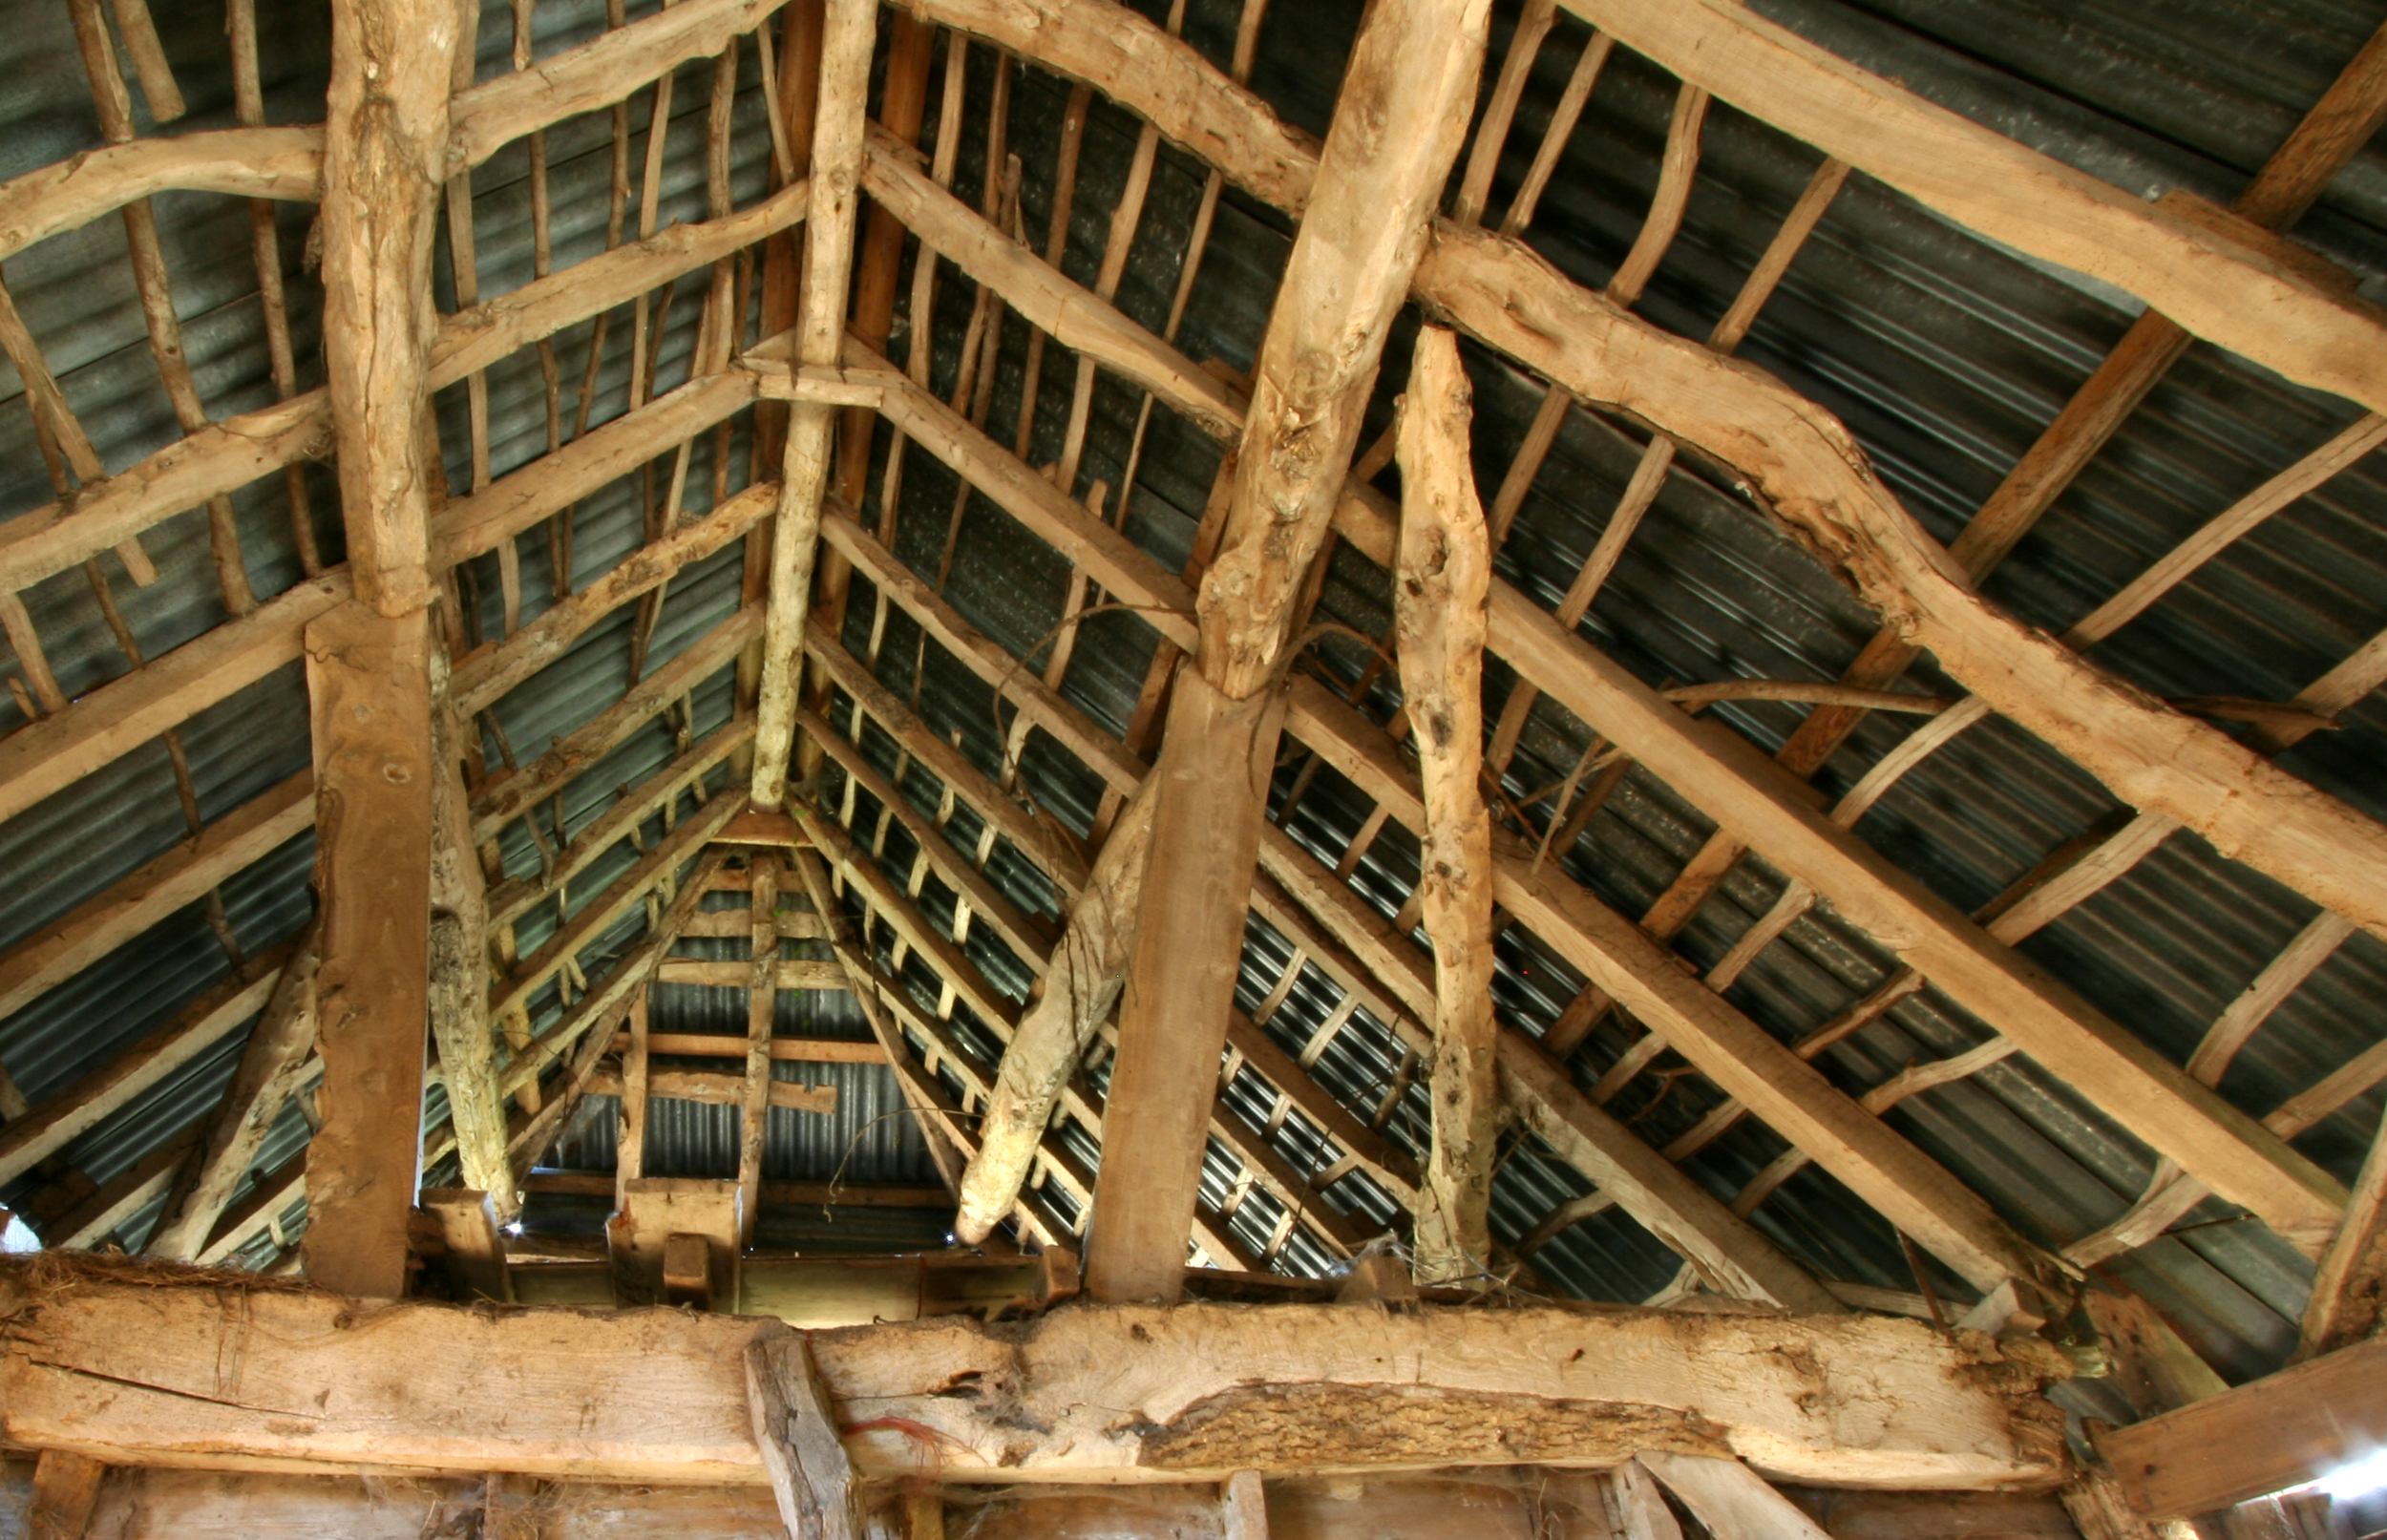 Albion Archaeology project. Roof of timber-framed barn, Buckinghamshire, December 2015